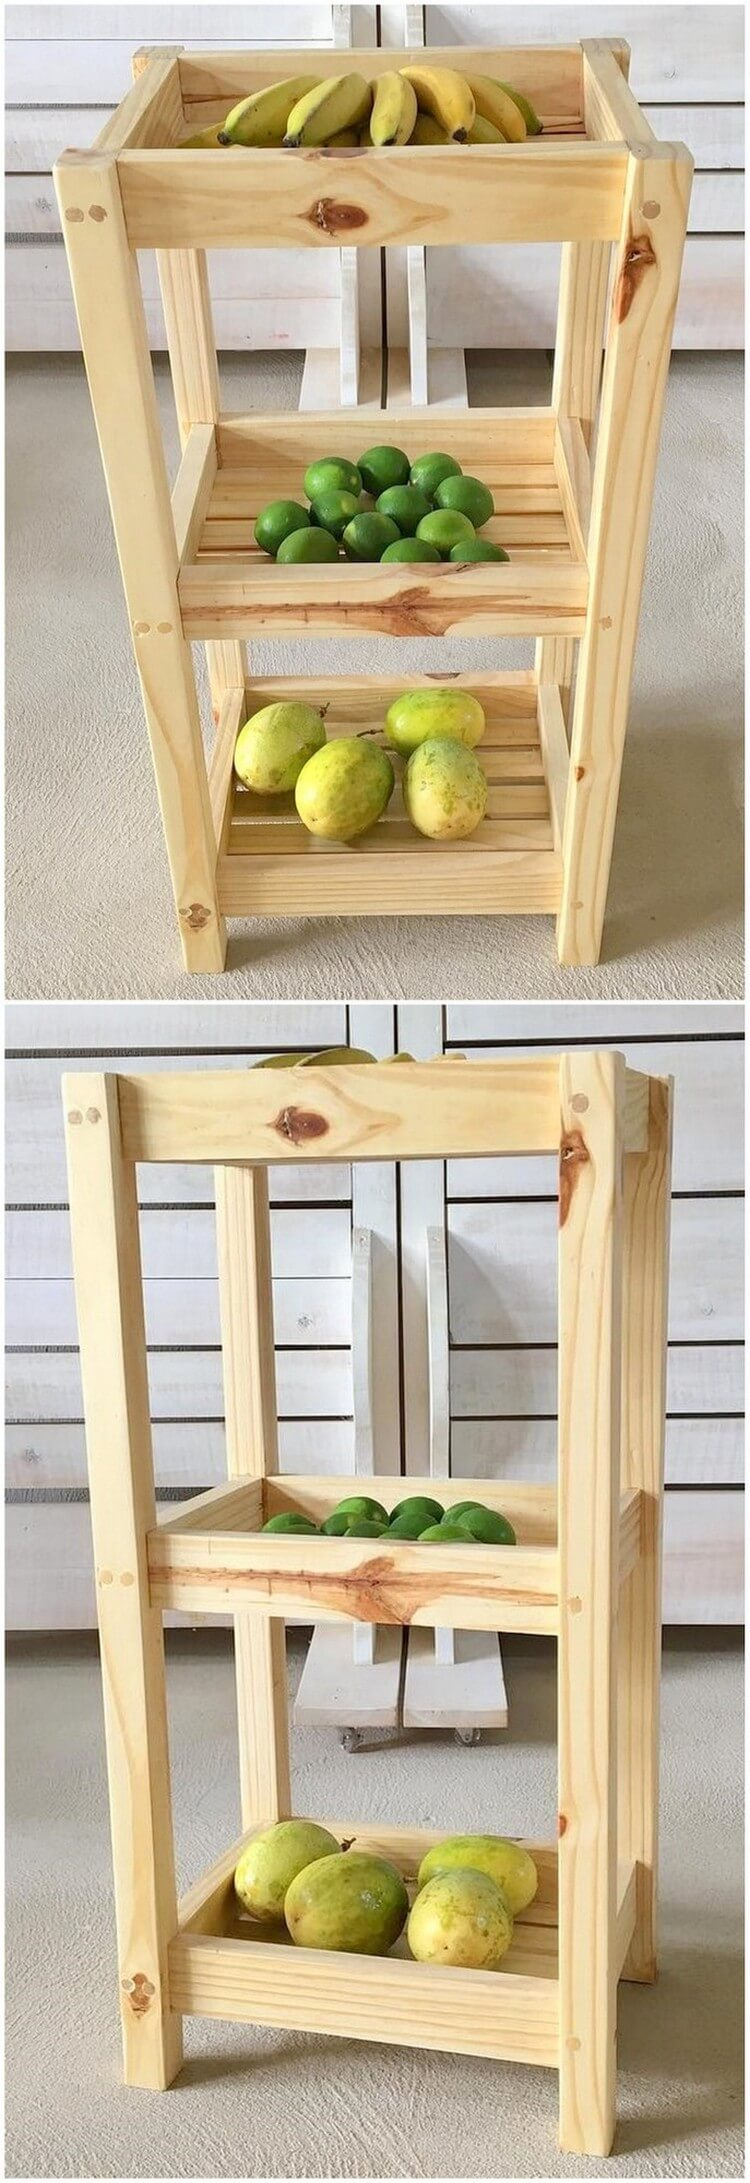 Pallet Fruits and Vegetables Rack